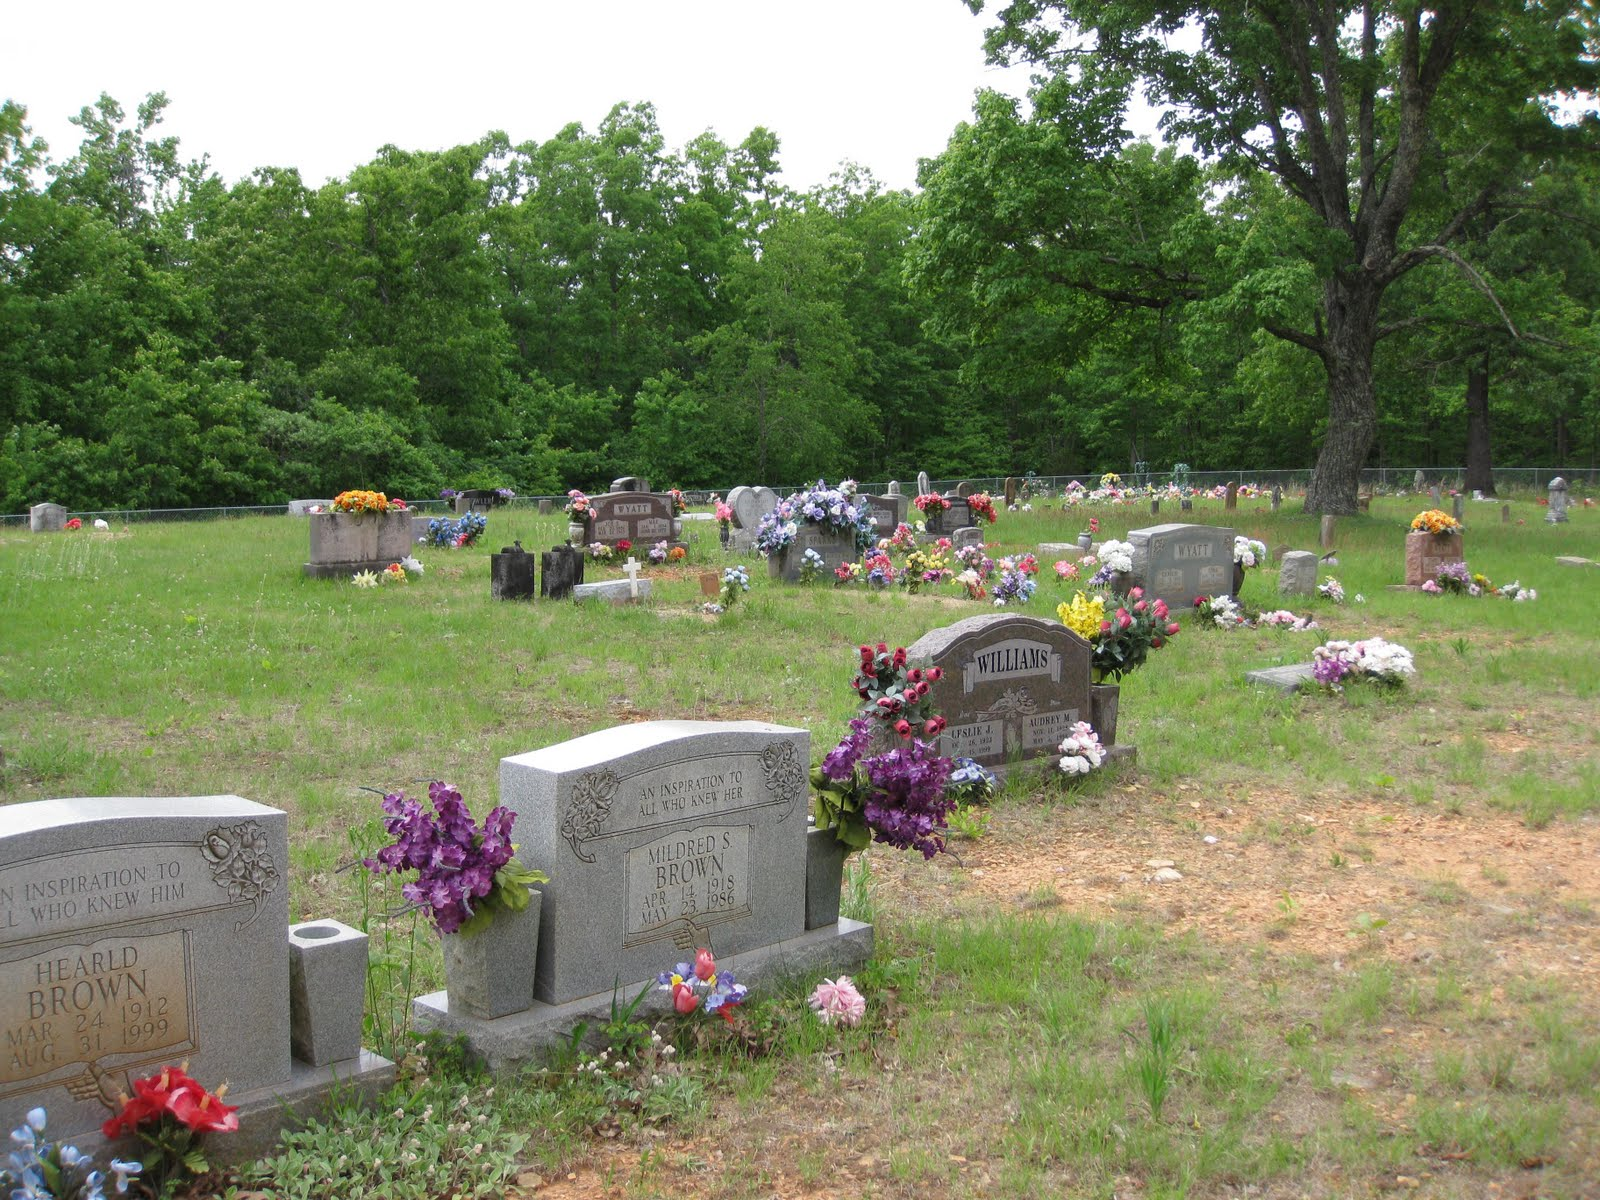 PATRON+ TOMBSTONE TUESDAY: These two headstones tell the story of the deceased life